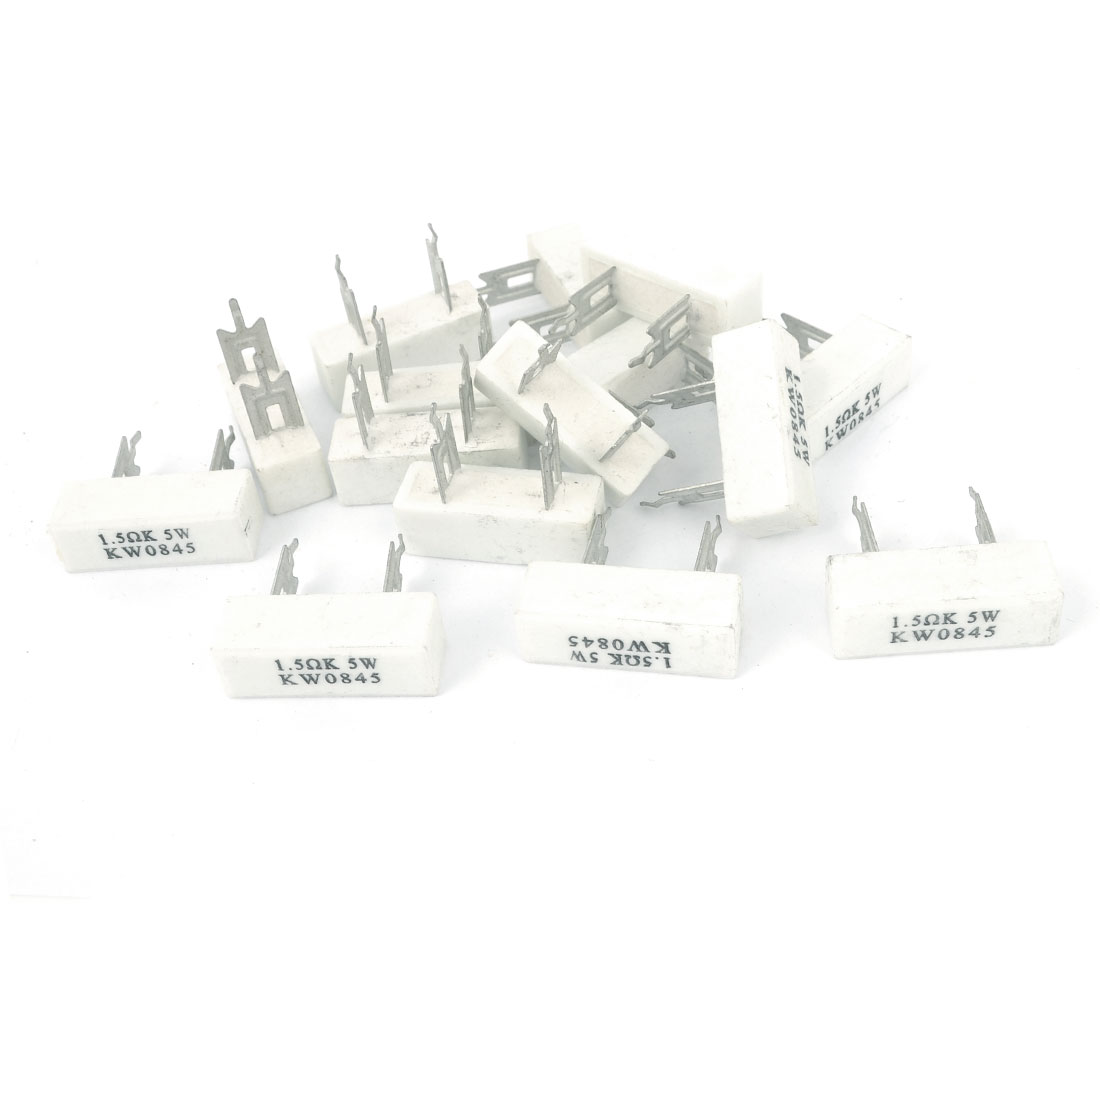 15 Pcs 5W 1.5 Ohm Radial Lead Ceramic Cement Power Resistor